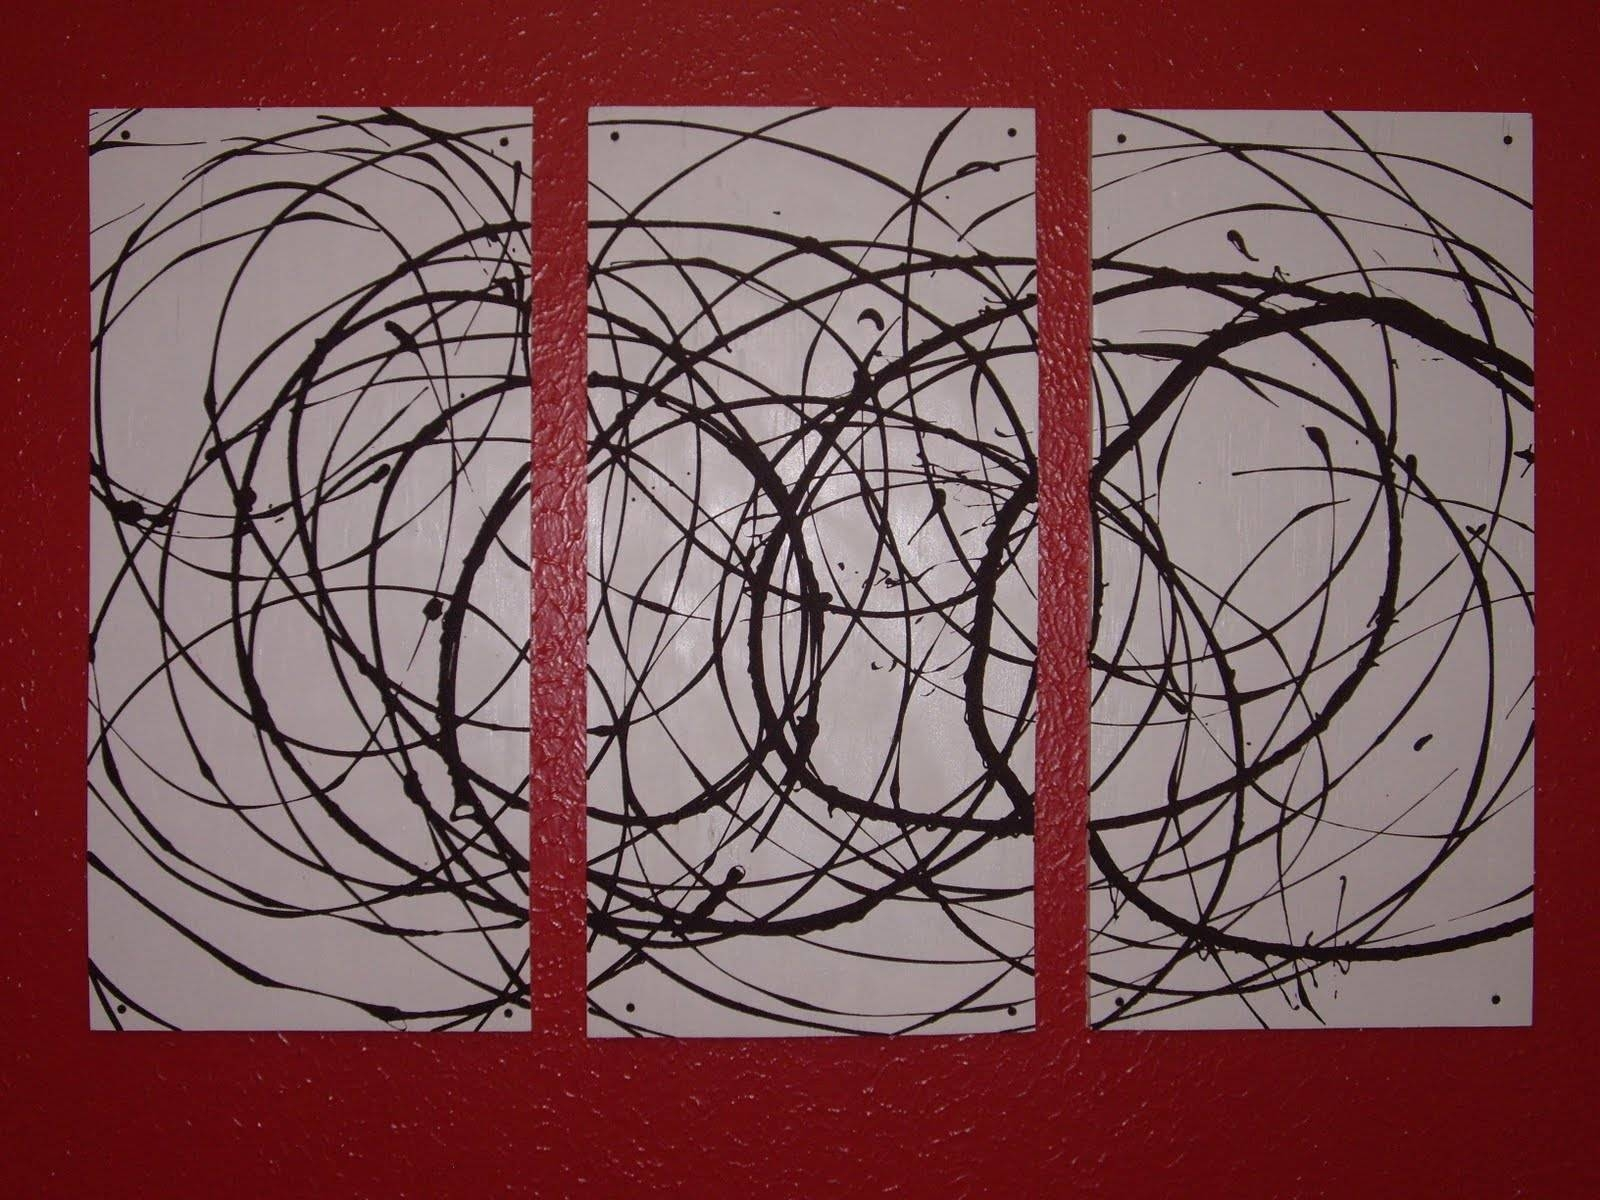 Wondrous Cheap Metal Wall Art Uk Abstract Wall Designs Discount Intended For Latest Cheap Abstract Wall Art (View 14 of 20)